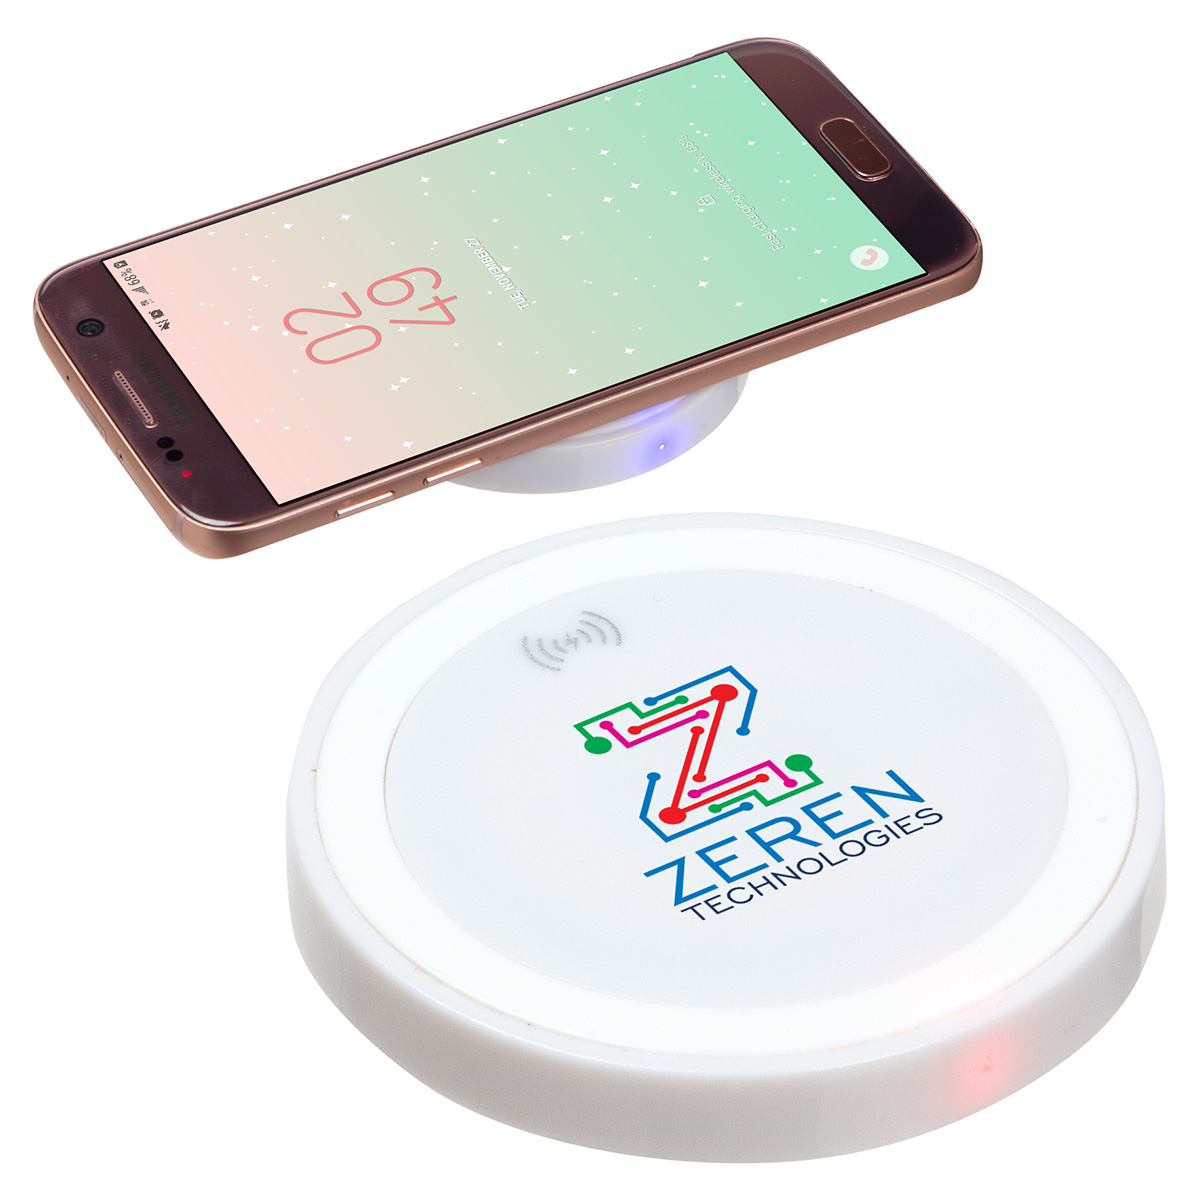 Power Disc 5W Wireless Charger, ECP-PD19, 1 Colour Imprint